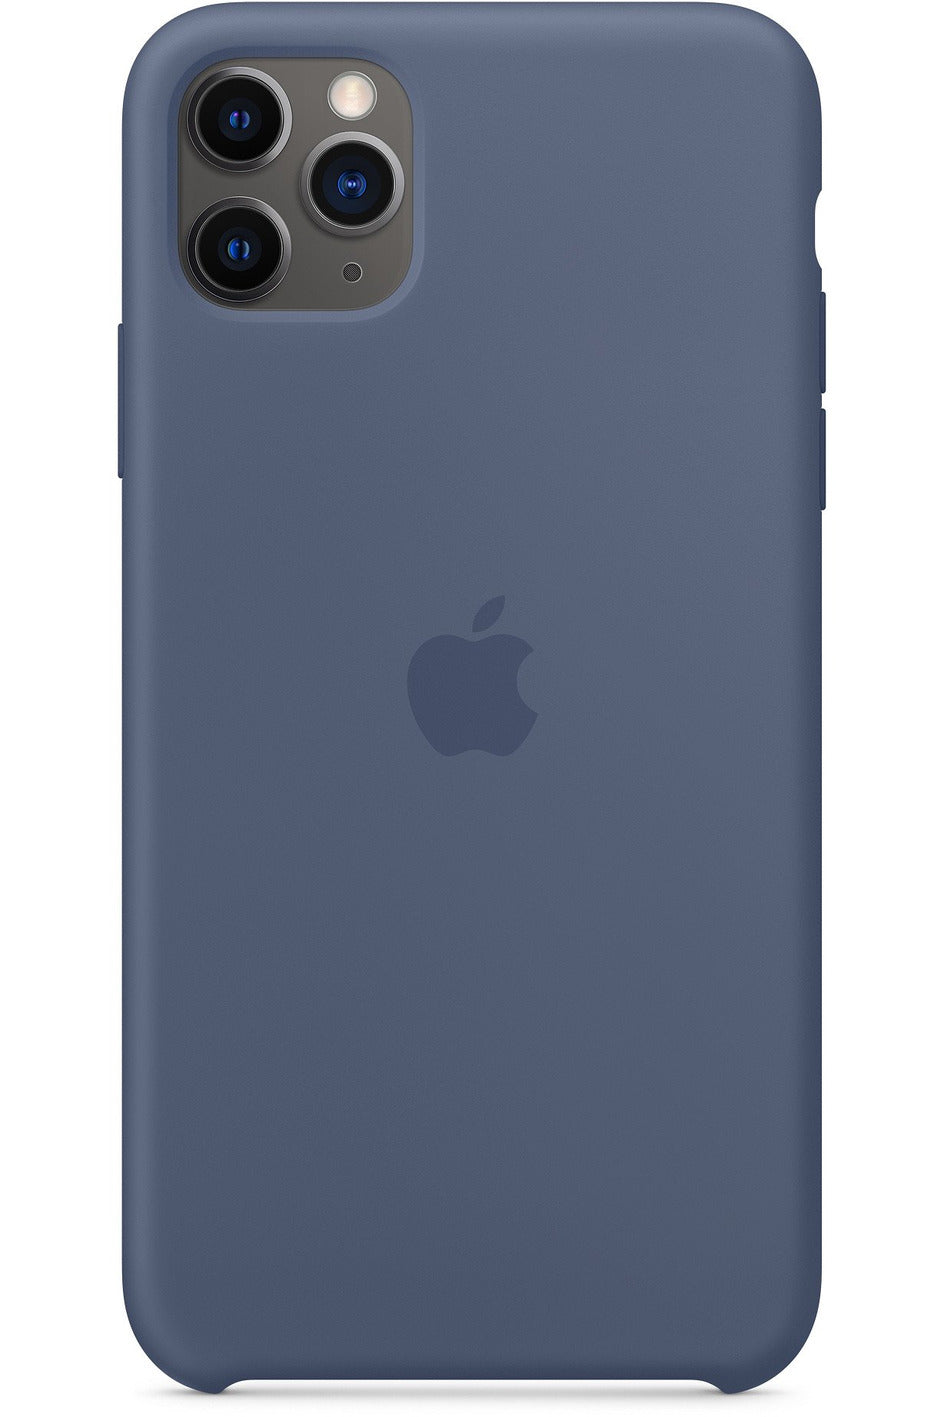 iPhone 11 Pro Max Silicone Case - Alaskan Blue